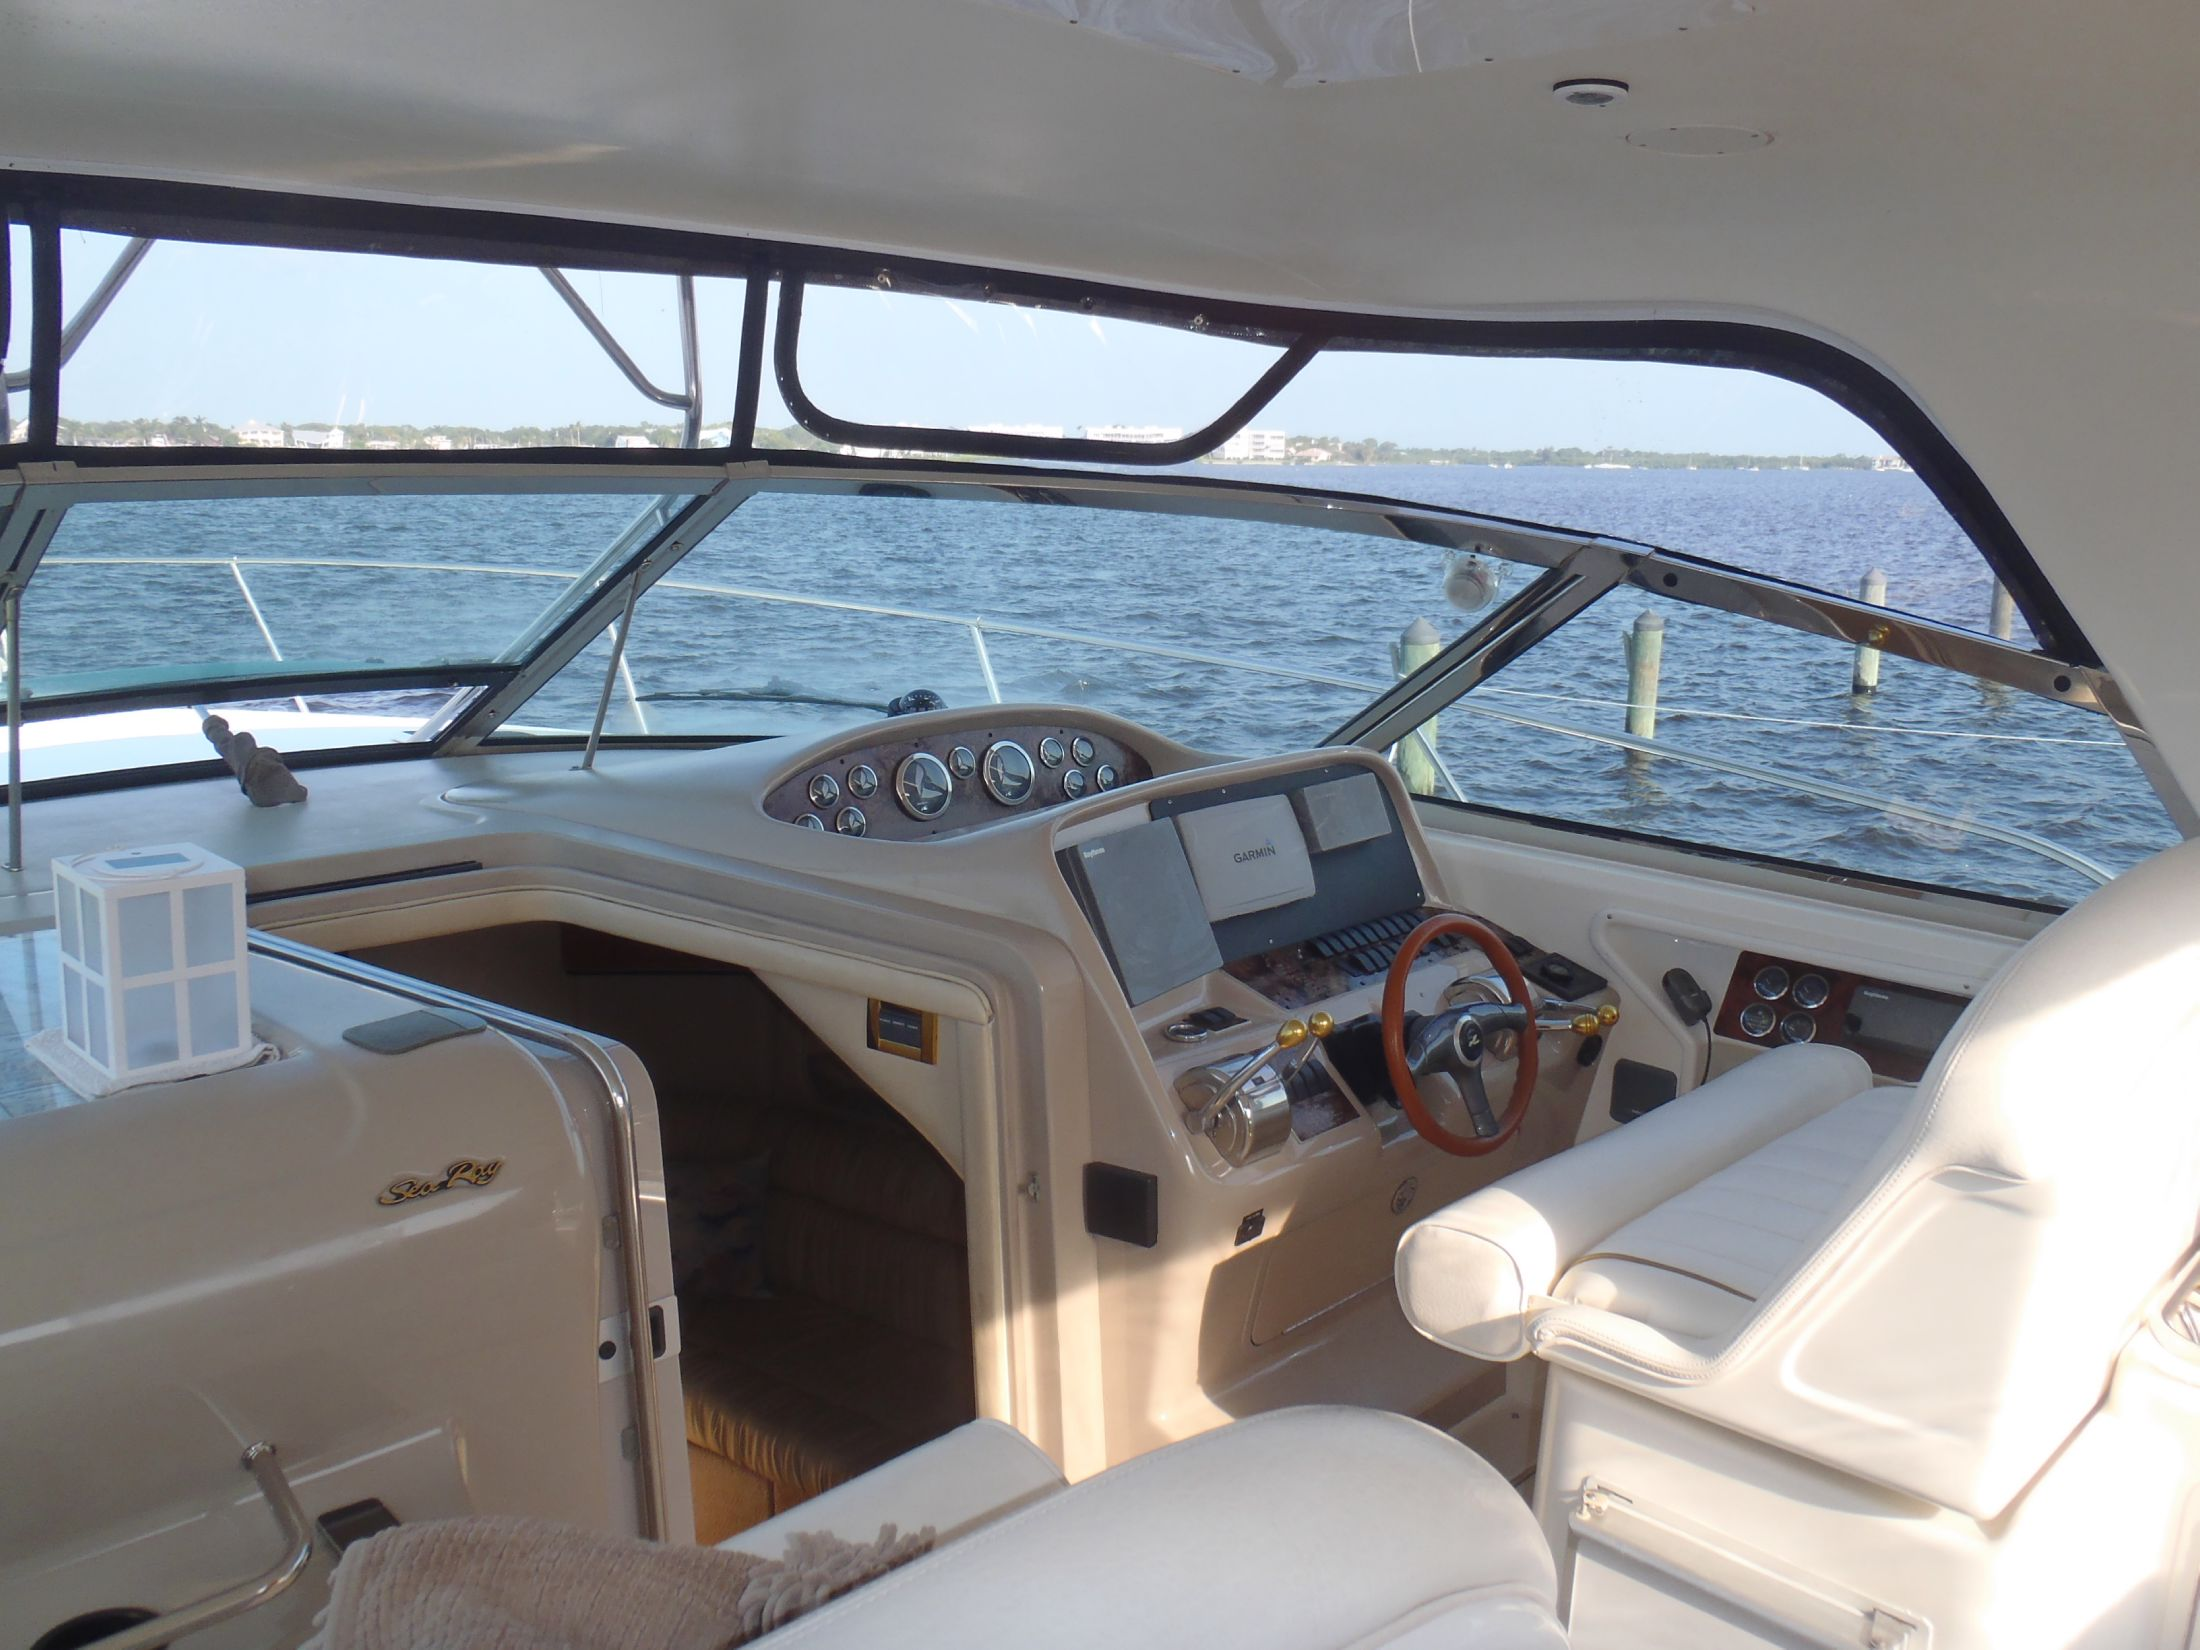 37 Sea Ray 1999 370 Express Cruiser For Sale In Stuart Florida Us Denison Yacht Sales